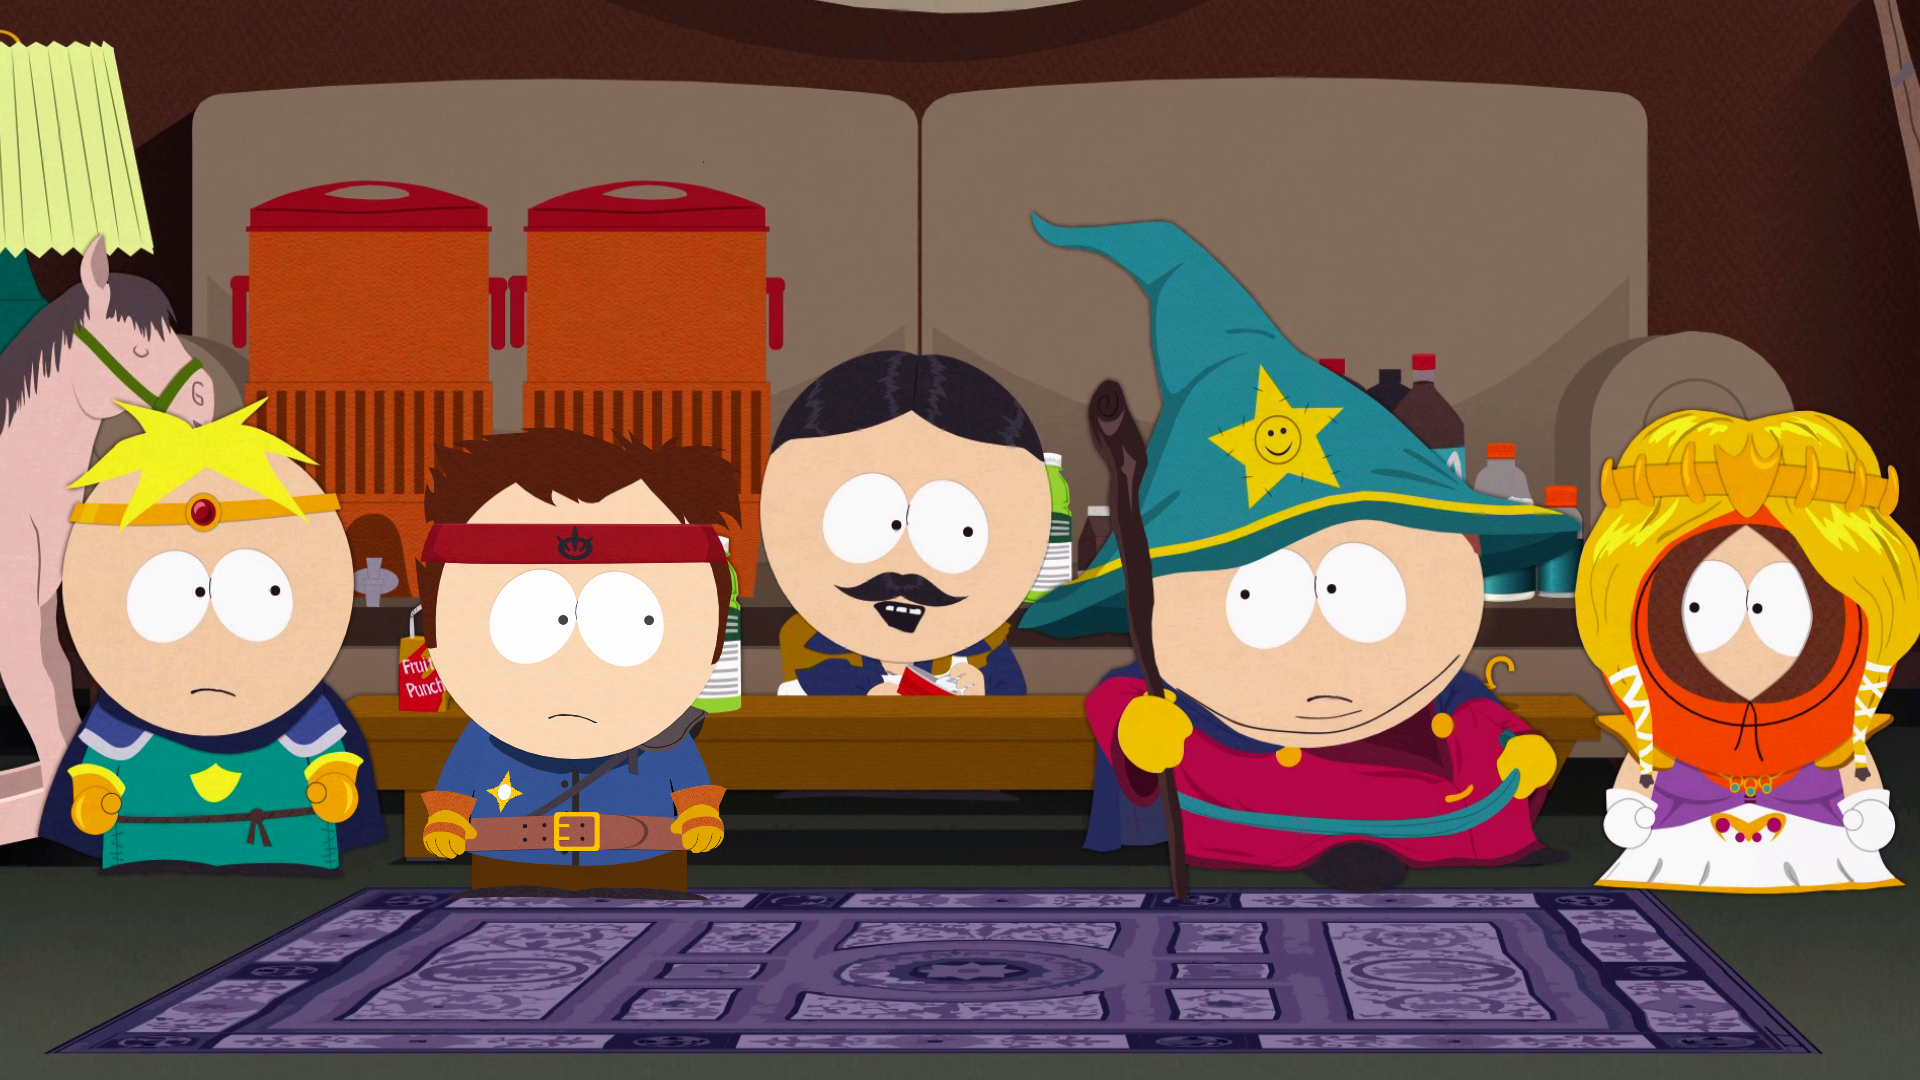 South-Park-The-Stick-of-Truth-02.jpg